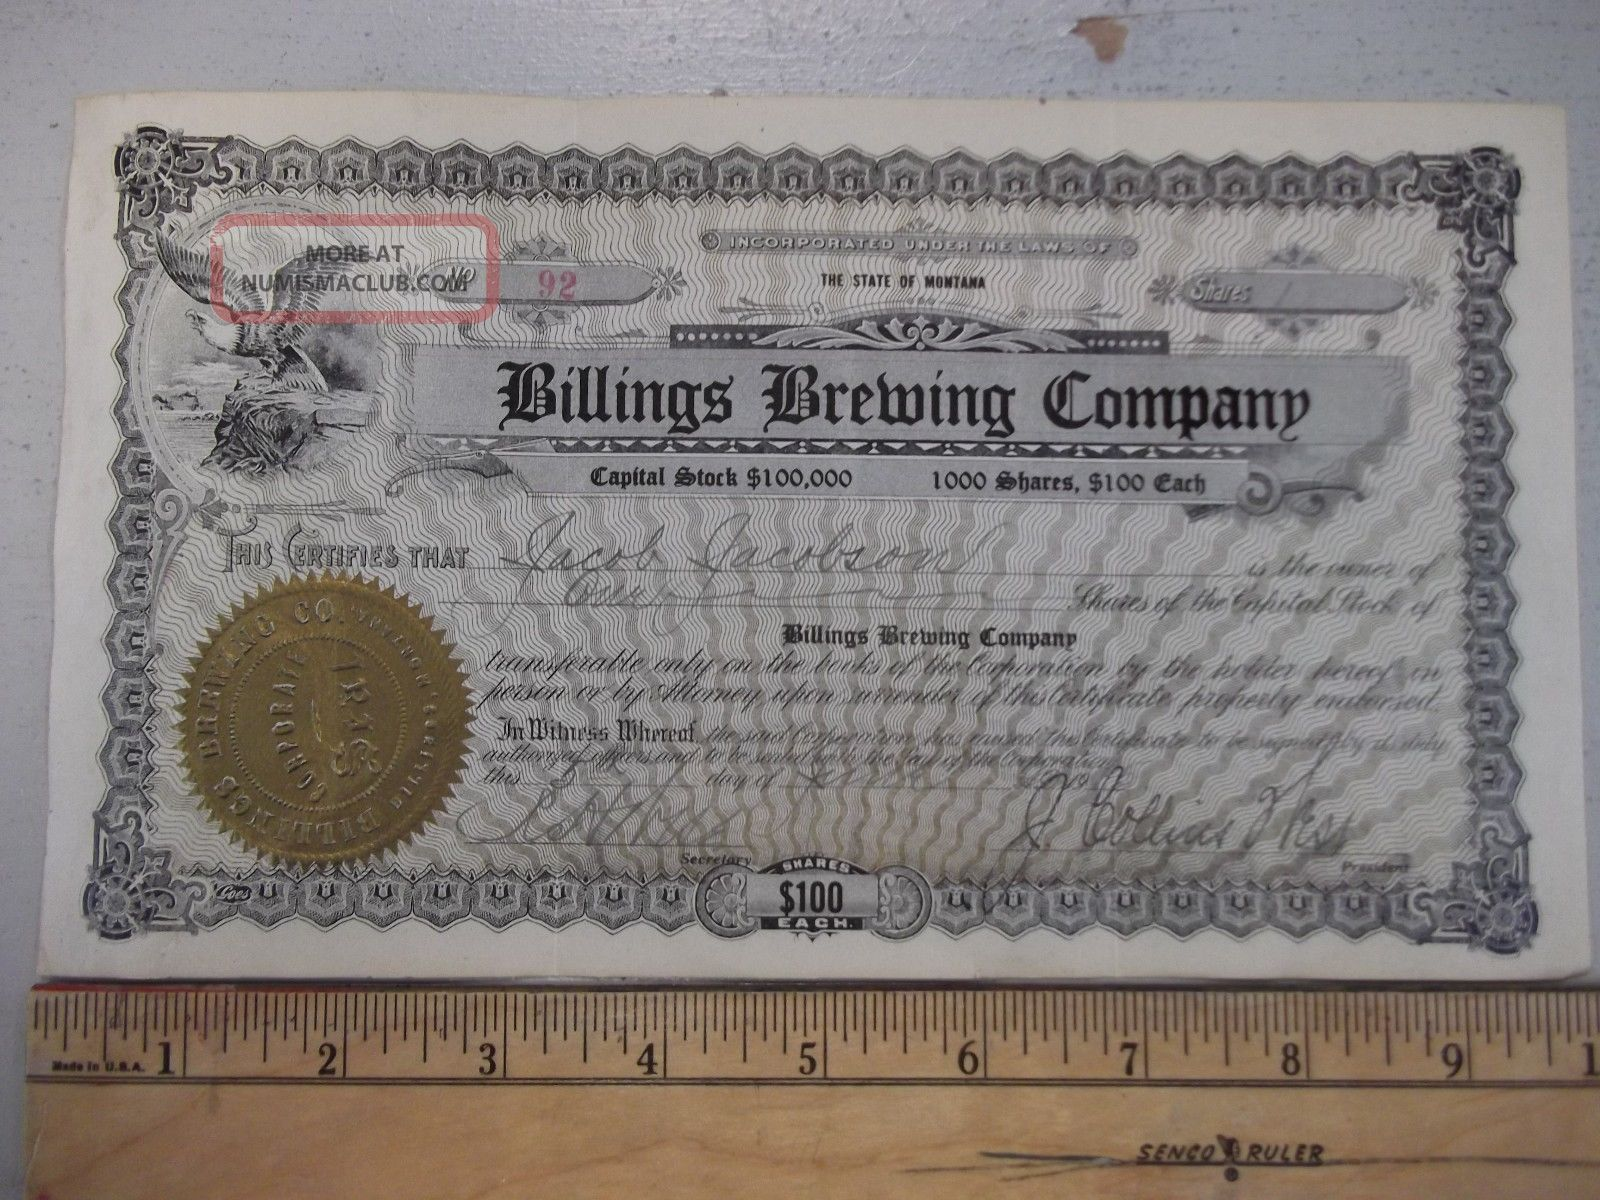 Antique 1915 Billings Brewing Company Stock Certificate Montana Beer Yellowstone Stocks & Bonds, Scripophily photo